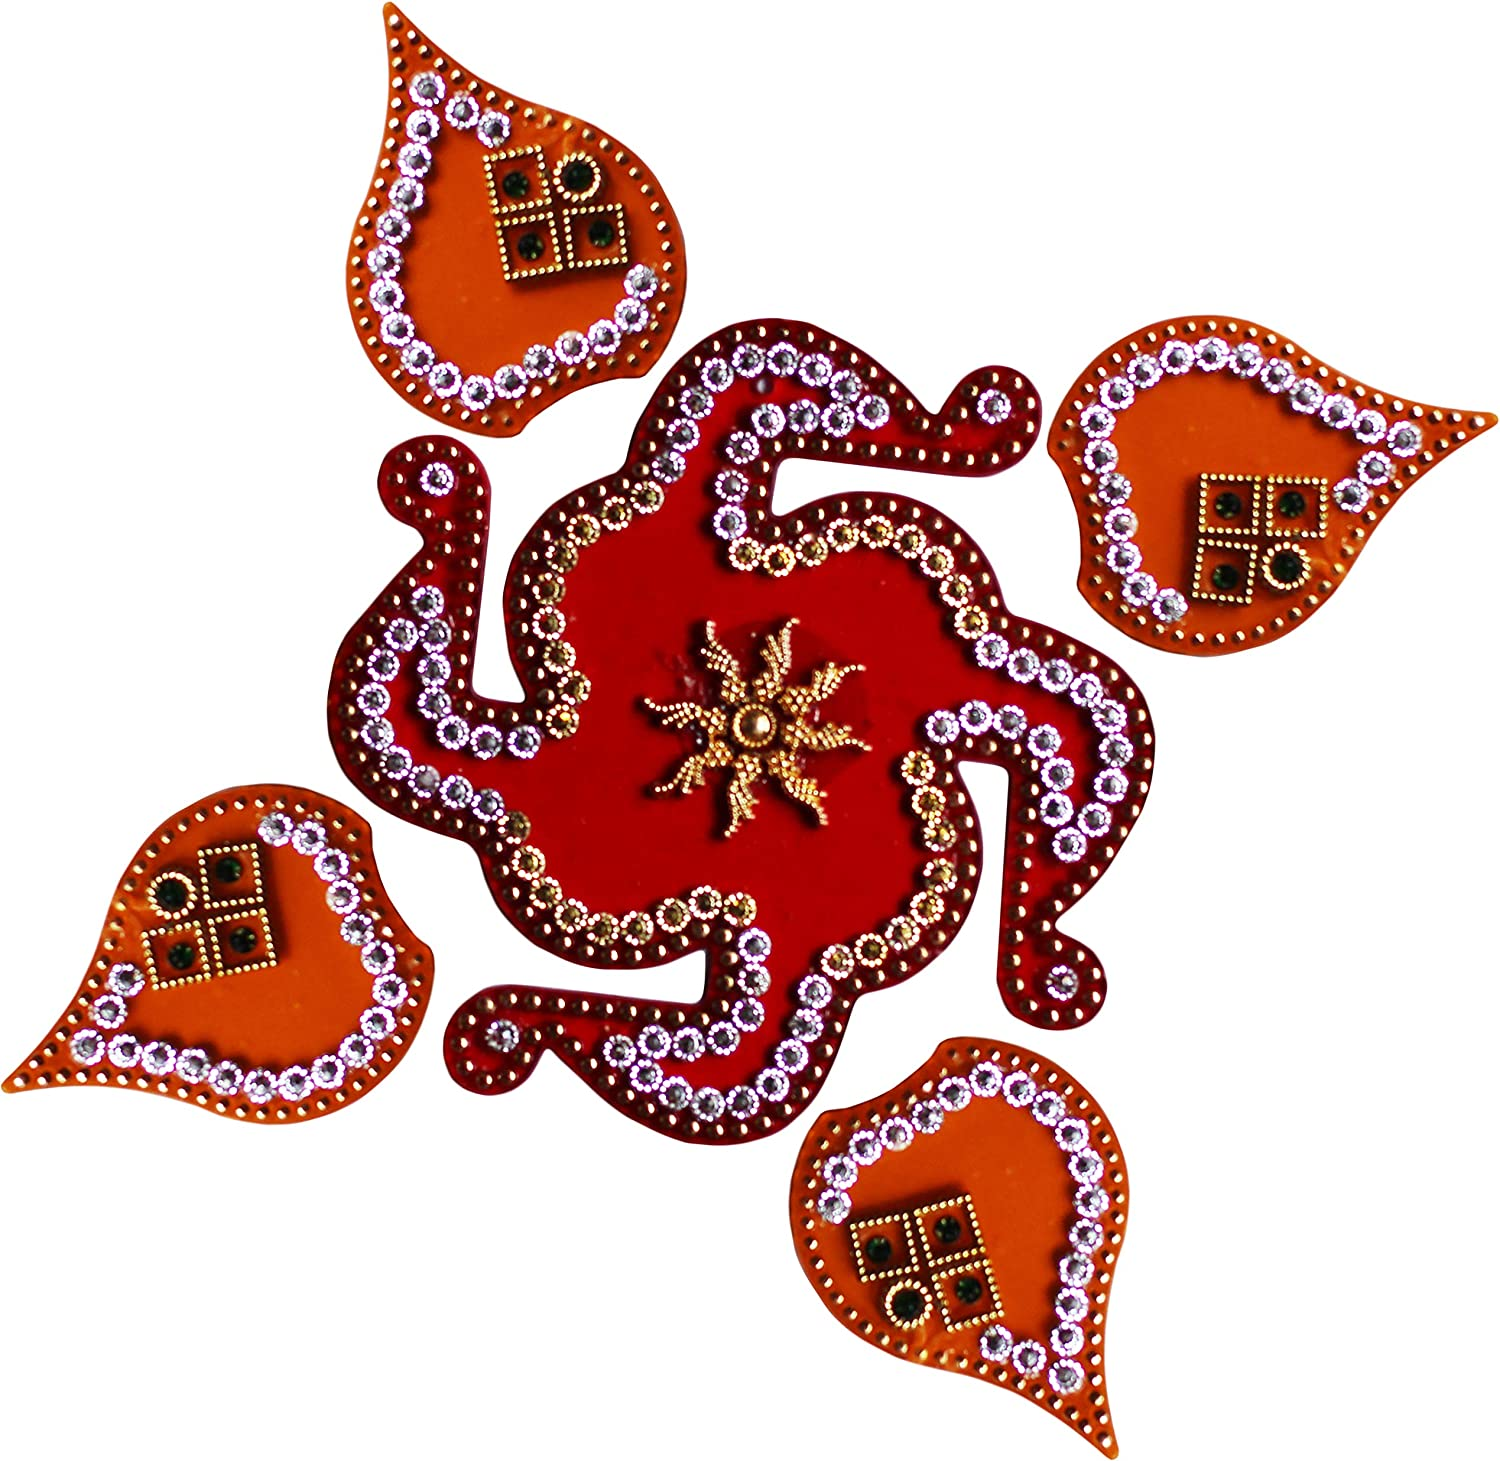 Diwali Acylic Multicolor Rangoli Floor Decorations with Studded Stones and Sequins, Traditional Festive Home Décor